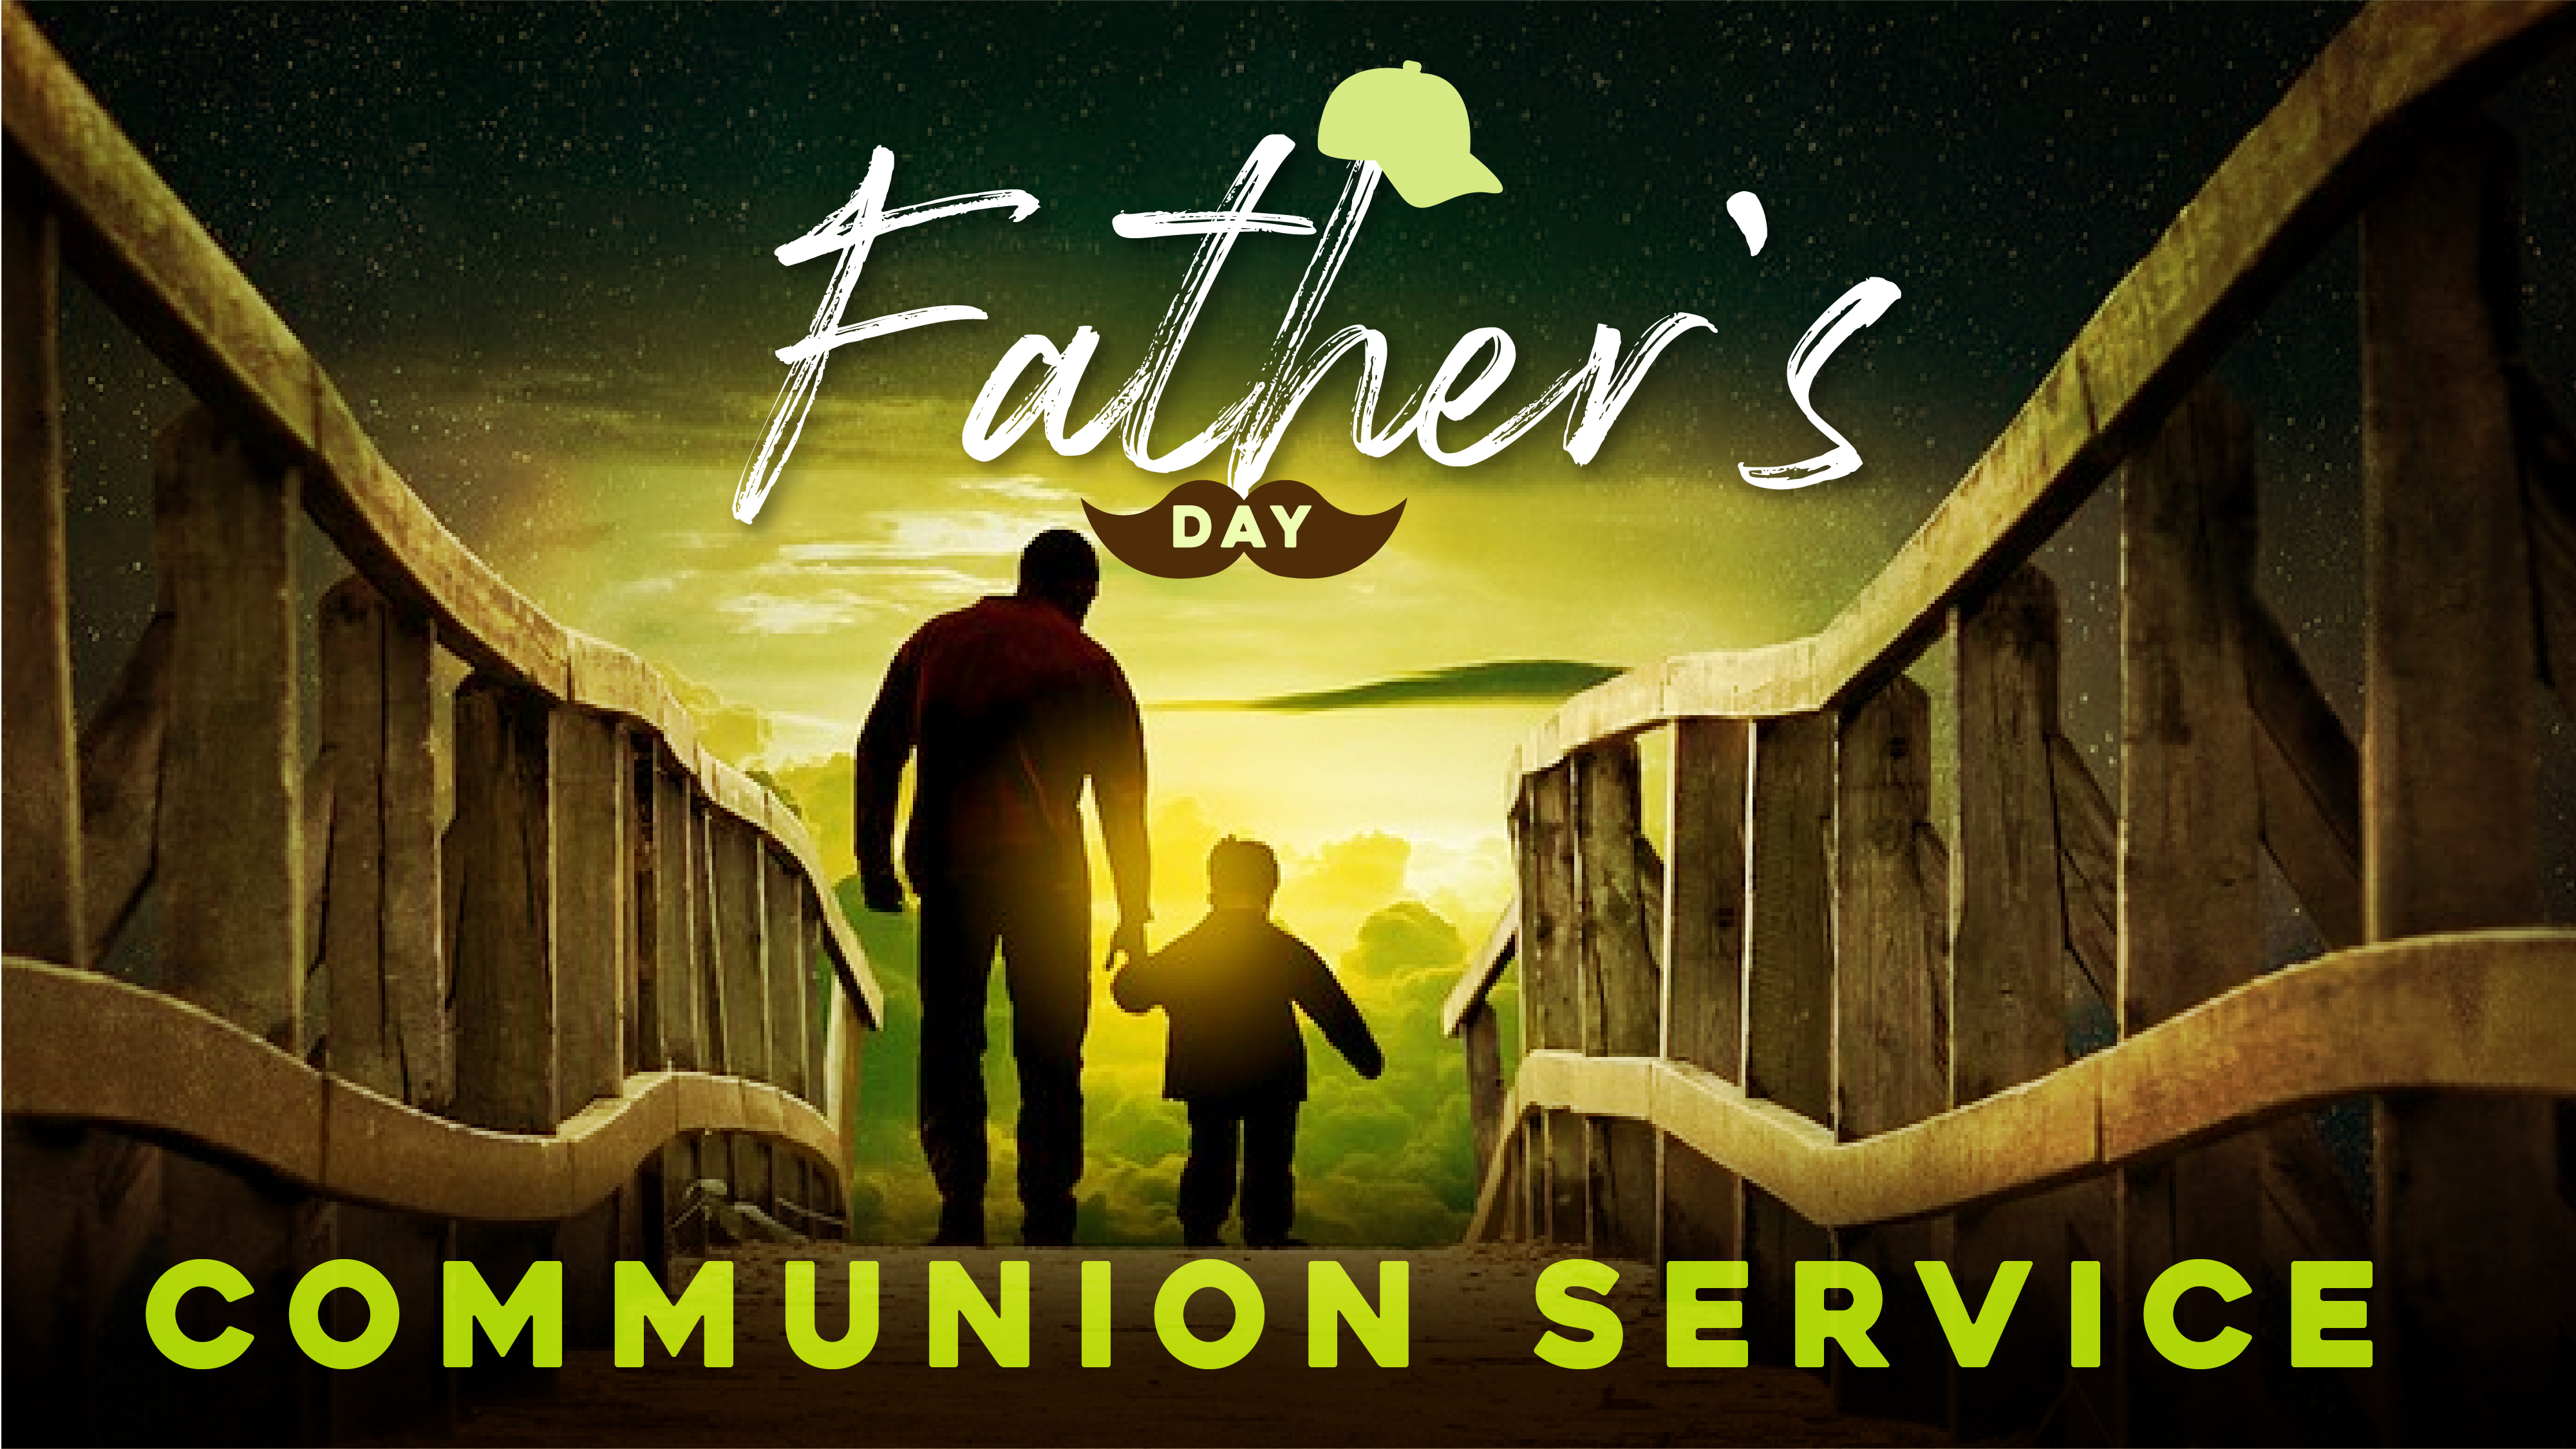 Father's Day Communion